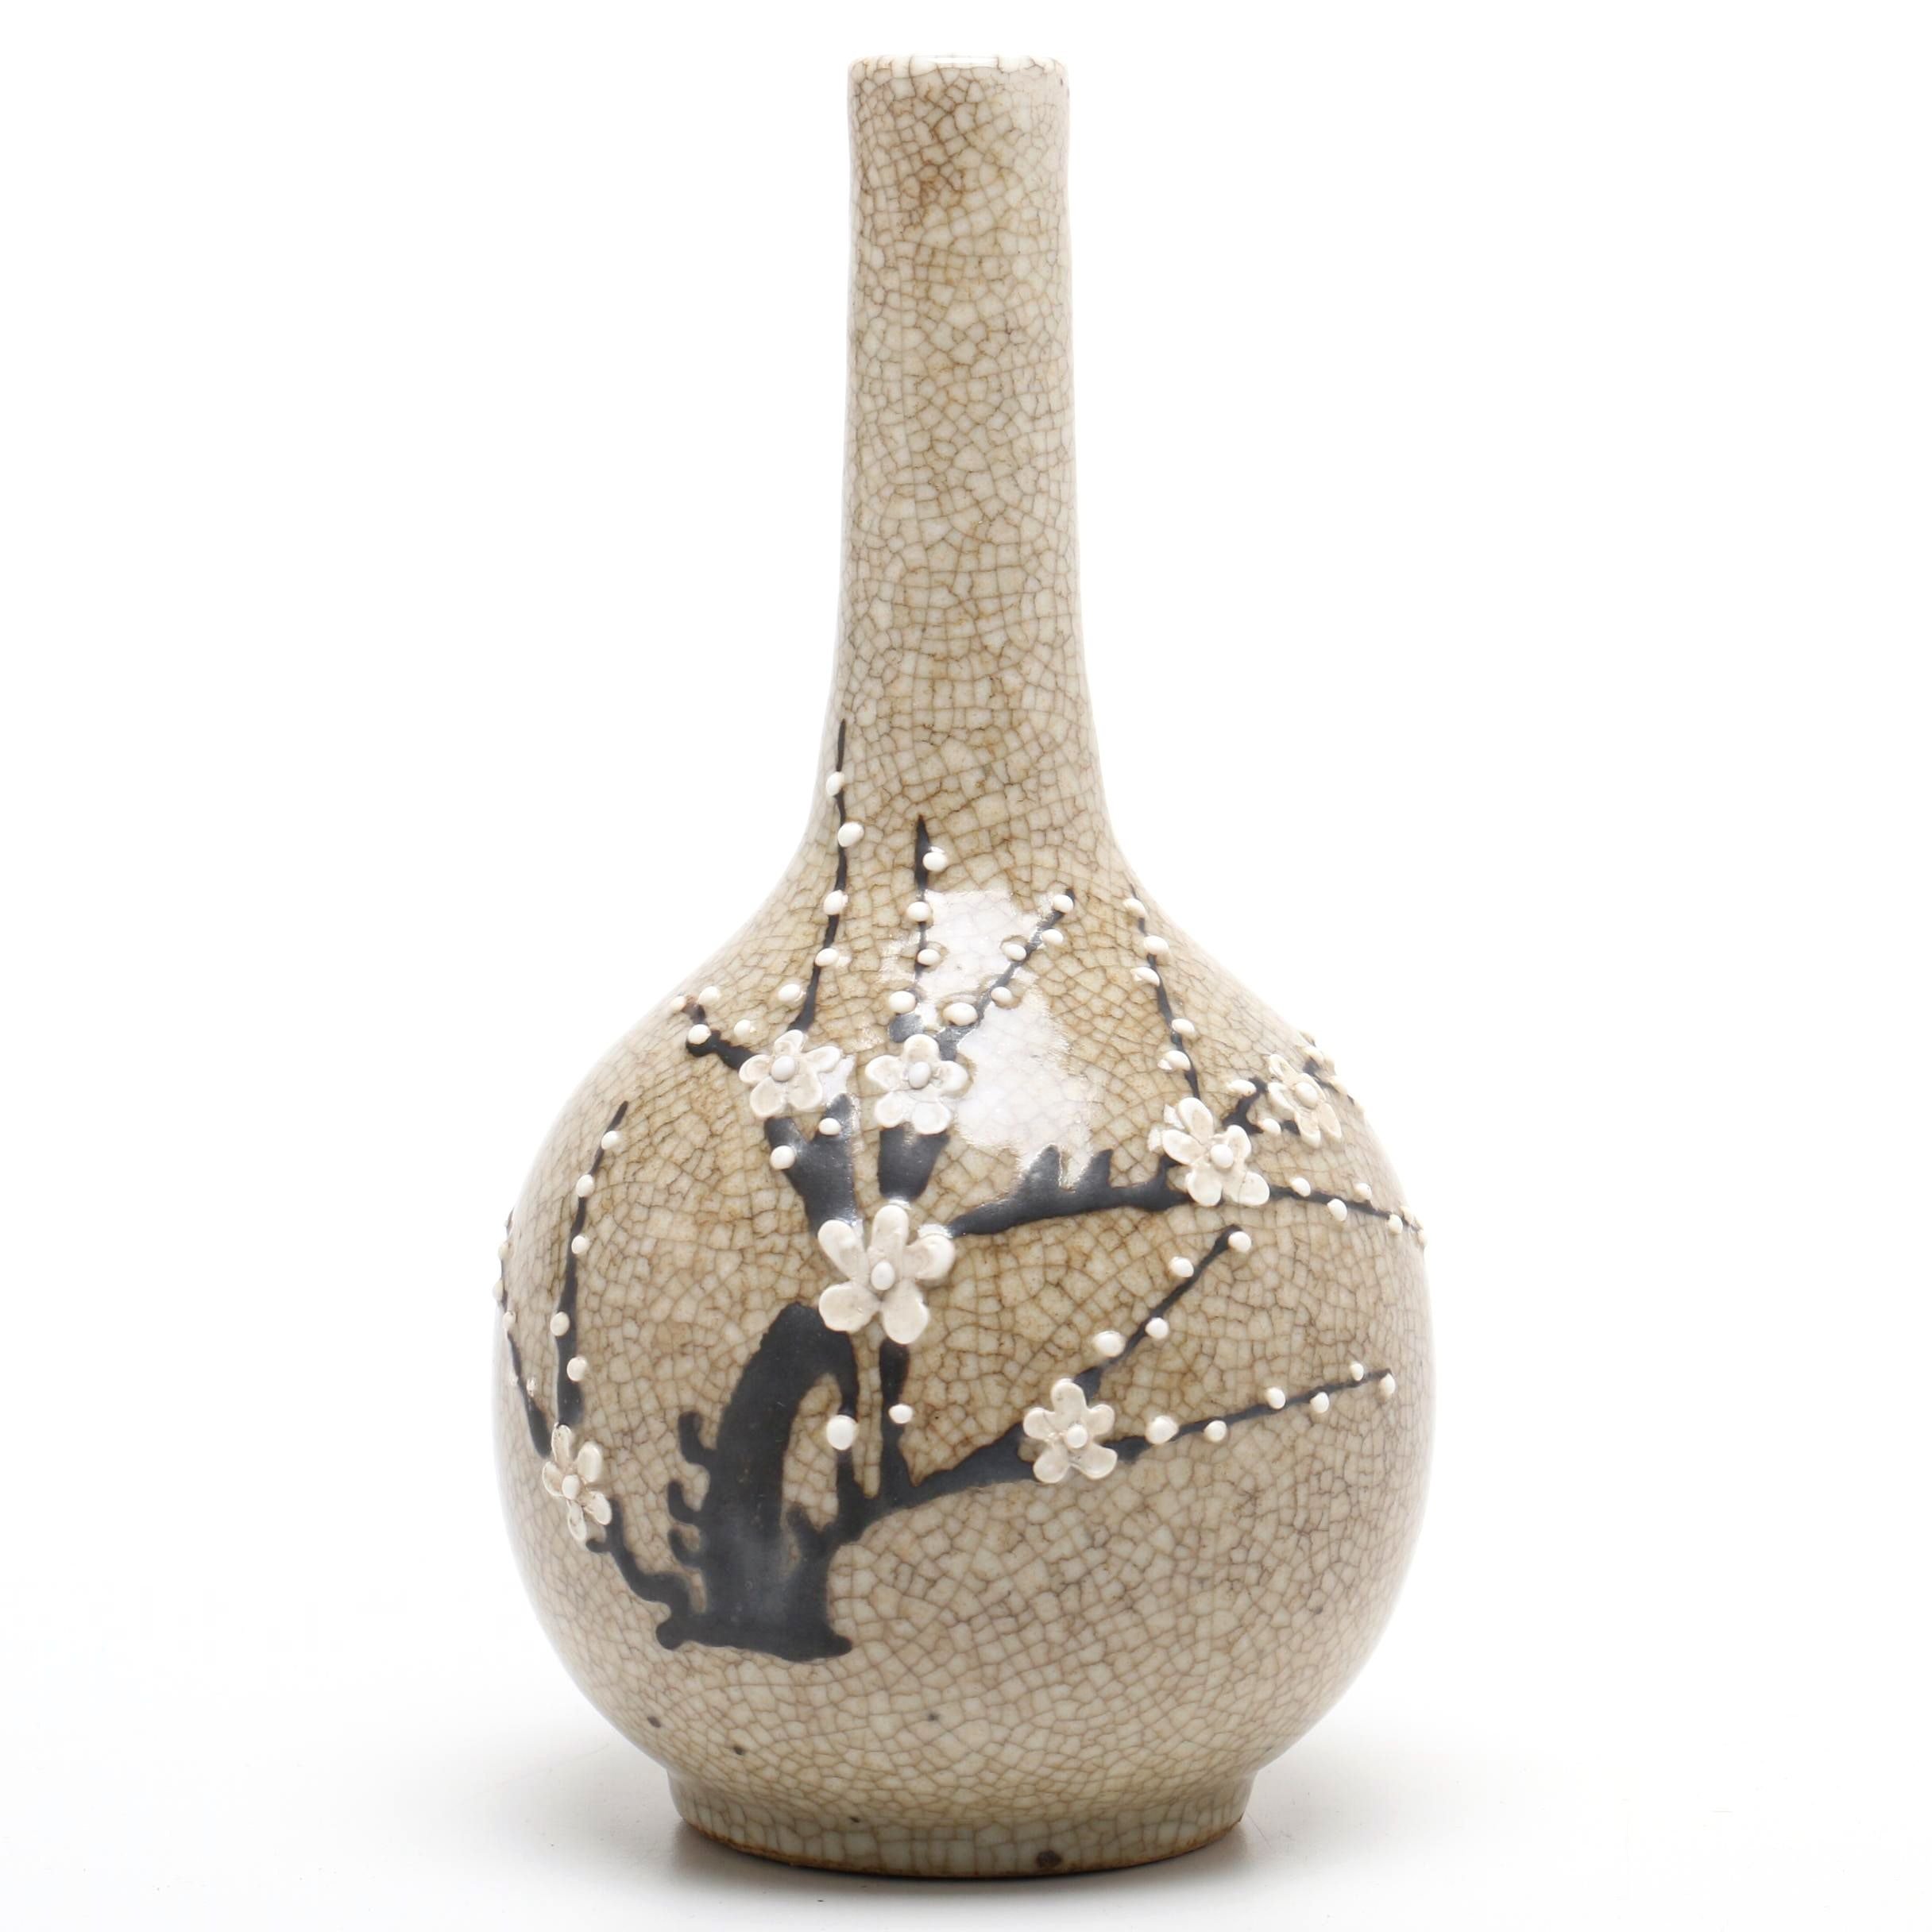 East Asian Brown Crackle Bud Vase with Applied Moriage Floral Embellishments